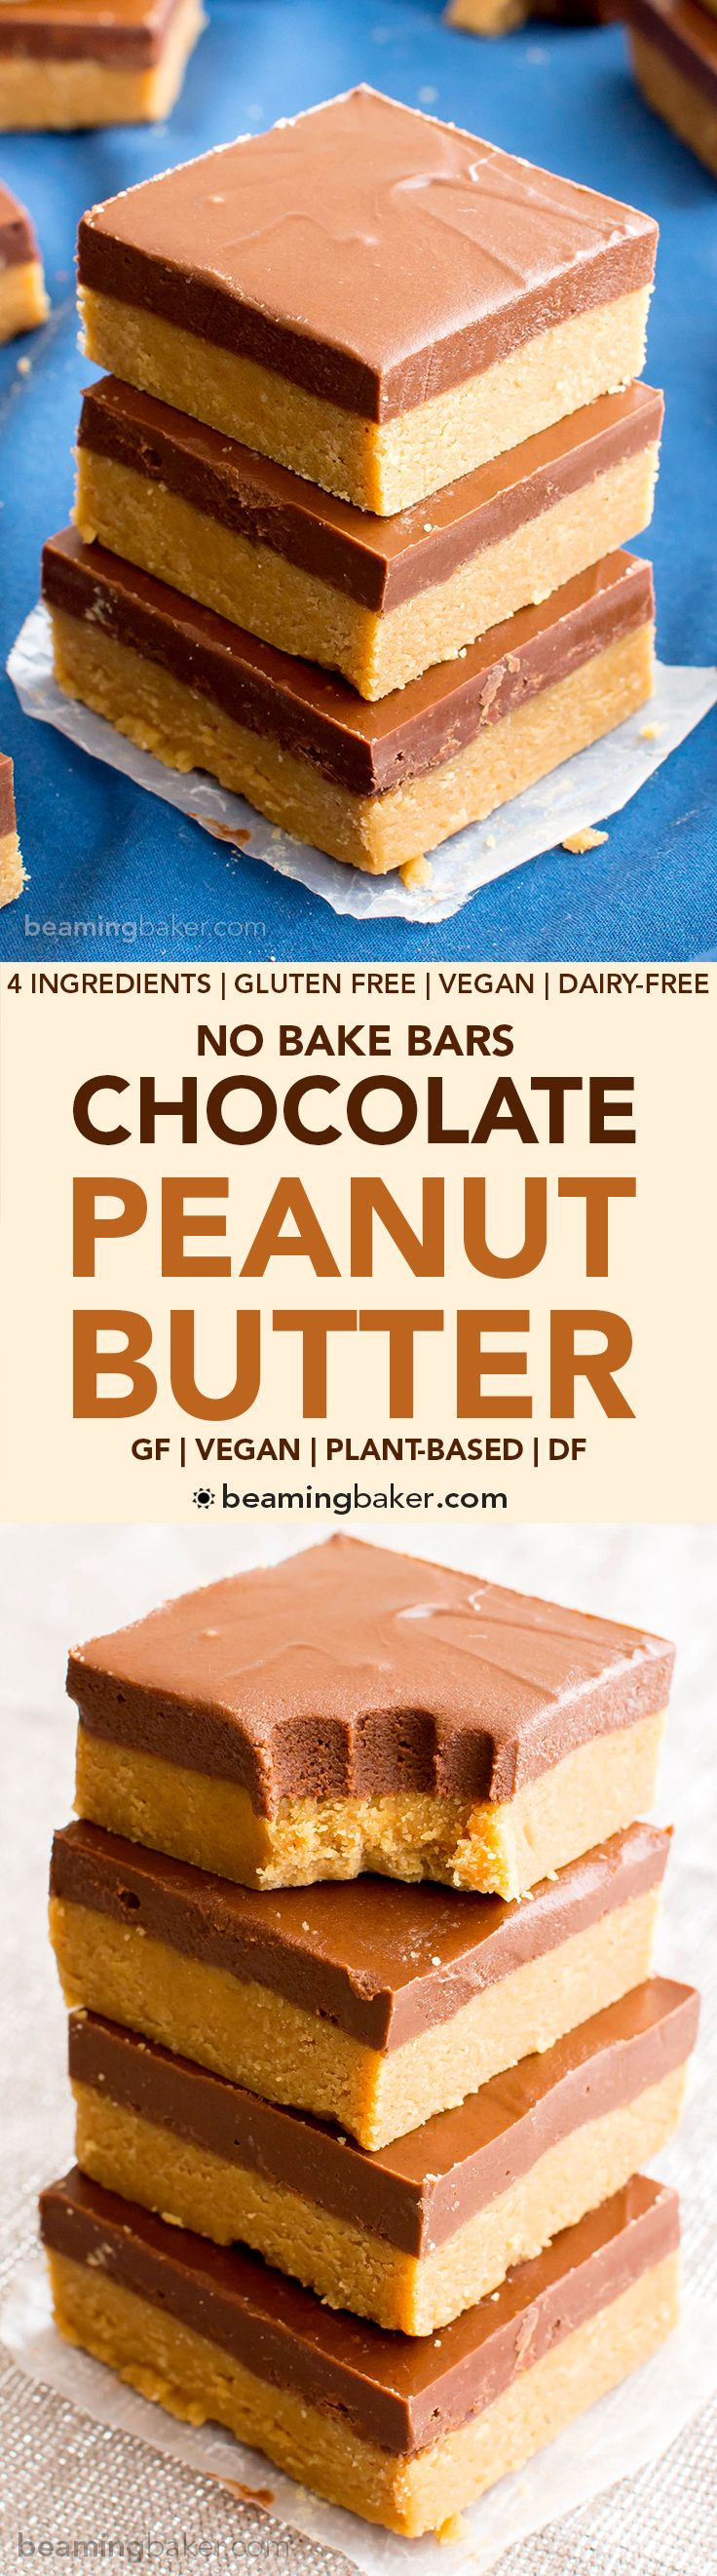 4 Ingredient No Bake Chocolate Peanut Butter Bars (V, GF, DF): an easy recipe for thick, decadent peanut butter bars that taste like Reese's. #Vegan #GlutenFree #DairyFree BeamingBaker.com //PINTEREST: selinaa//